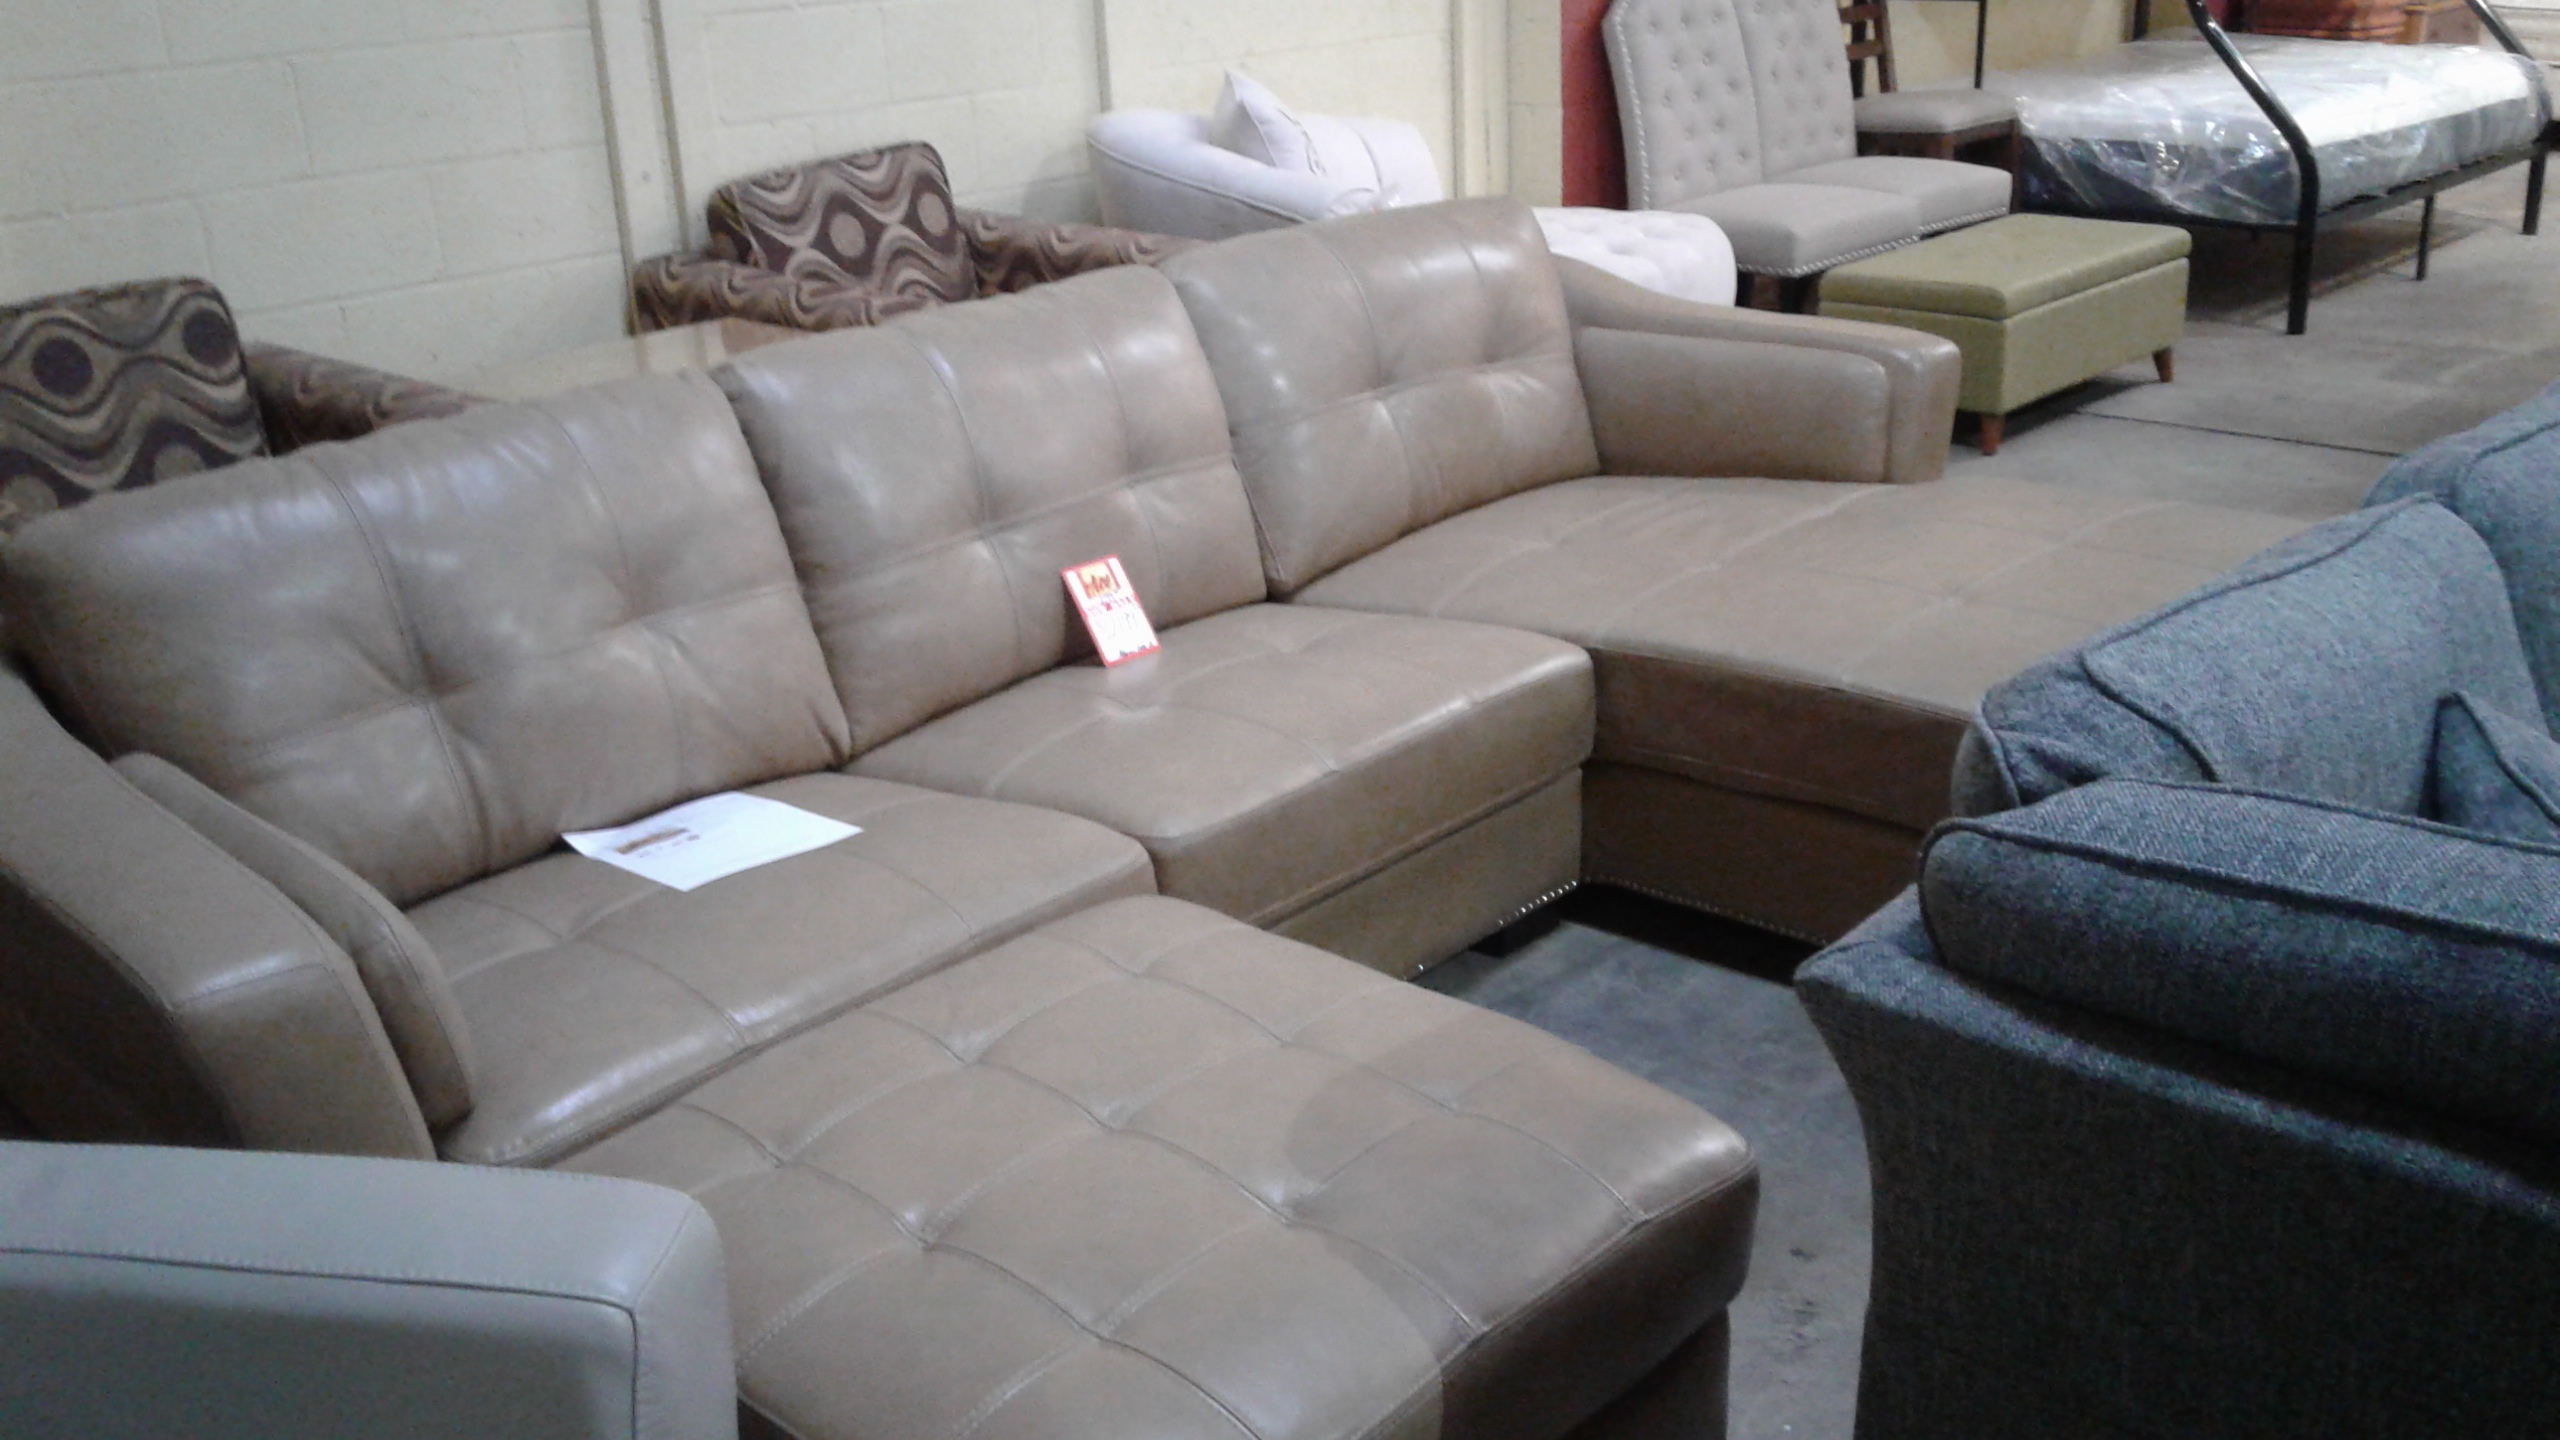 ... Yakima, WA. Contact Ace Furniture Today To Get Your New Living Room,  Dining Room Or Bedroom Set. We Have Couches, Dining Tables U0026 Chairs, Bed  Frames And ...